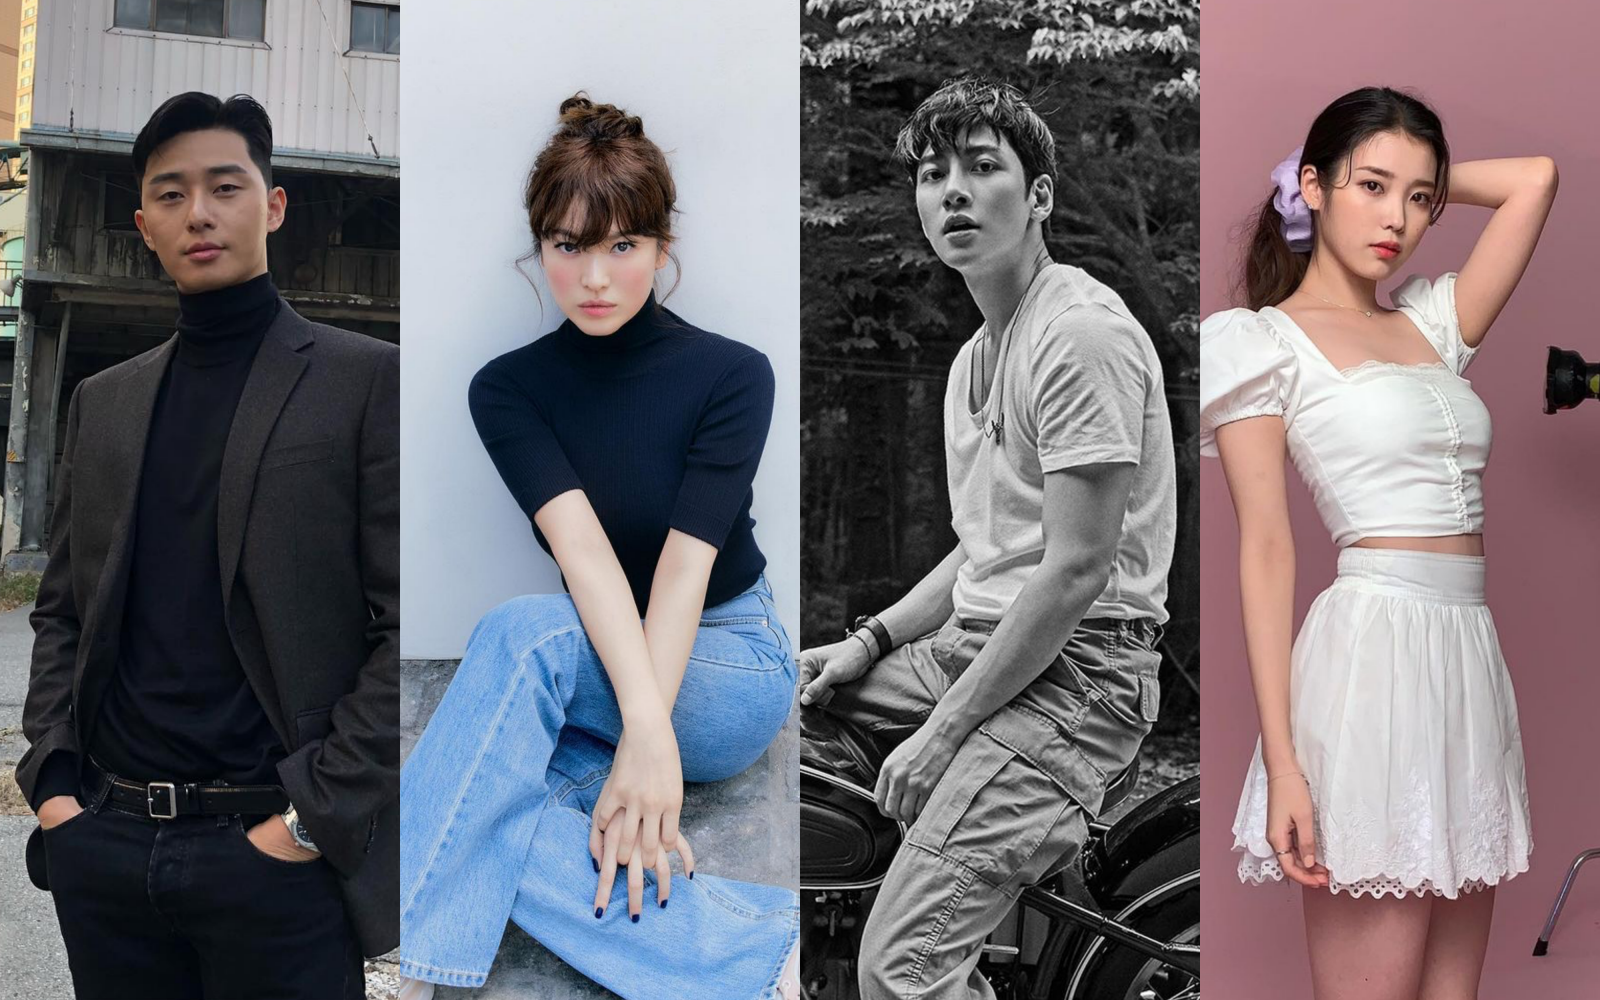 15 K Drama Actors To Follow On Instagram: Cha Eun-woo, Park Seo-joon, And More